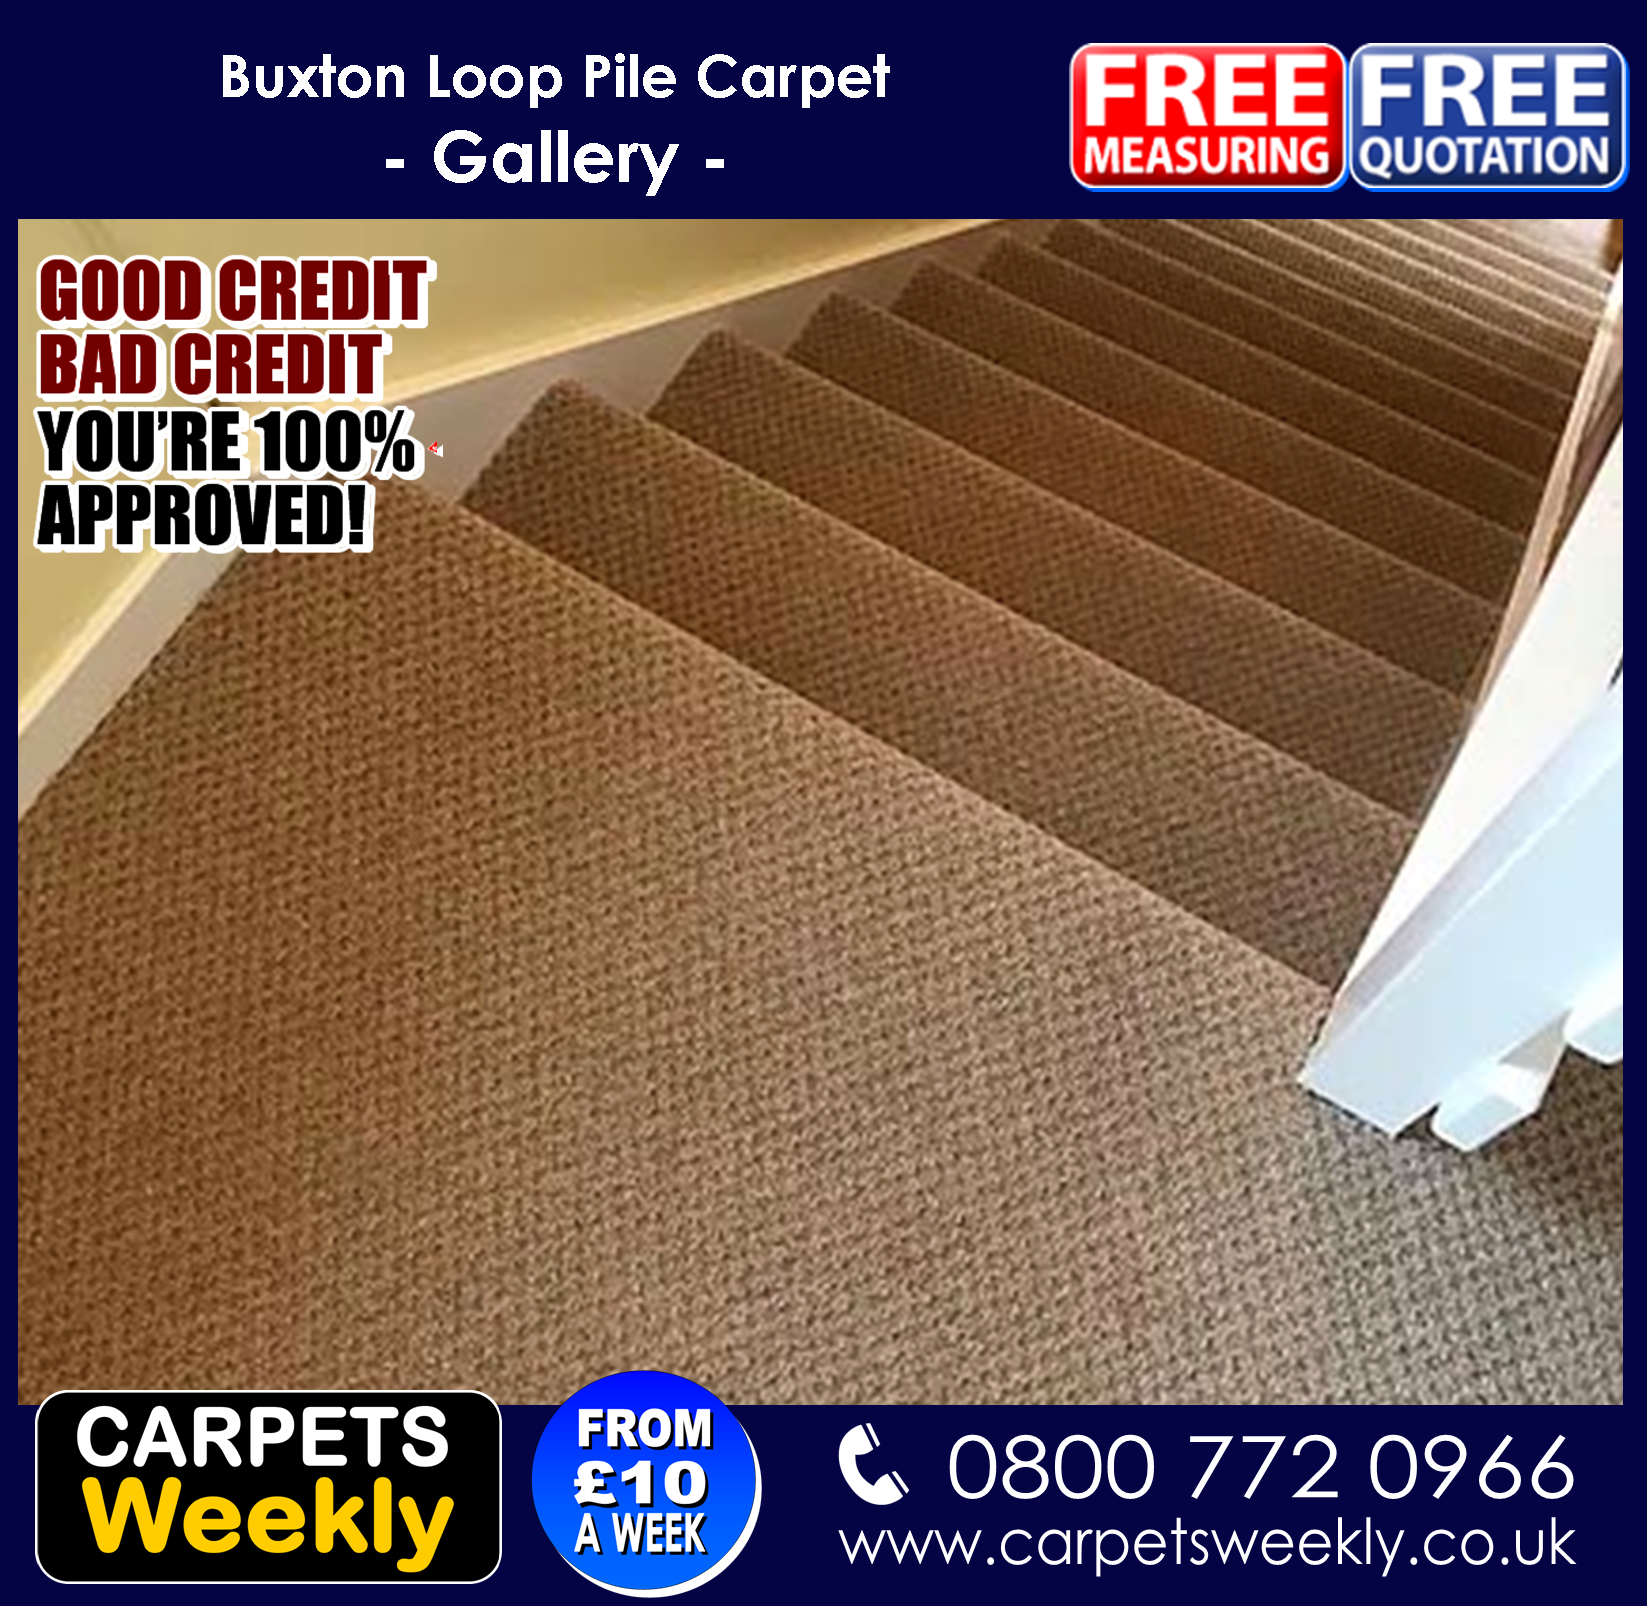 Buxton Carpet from Carpets Weekly